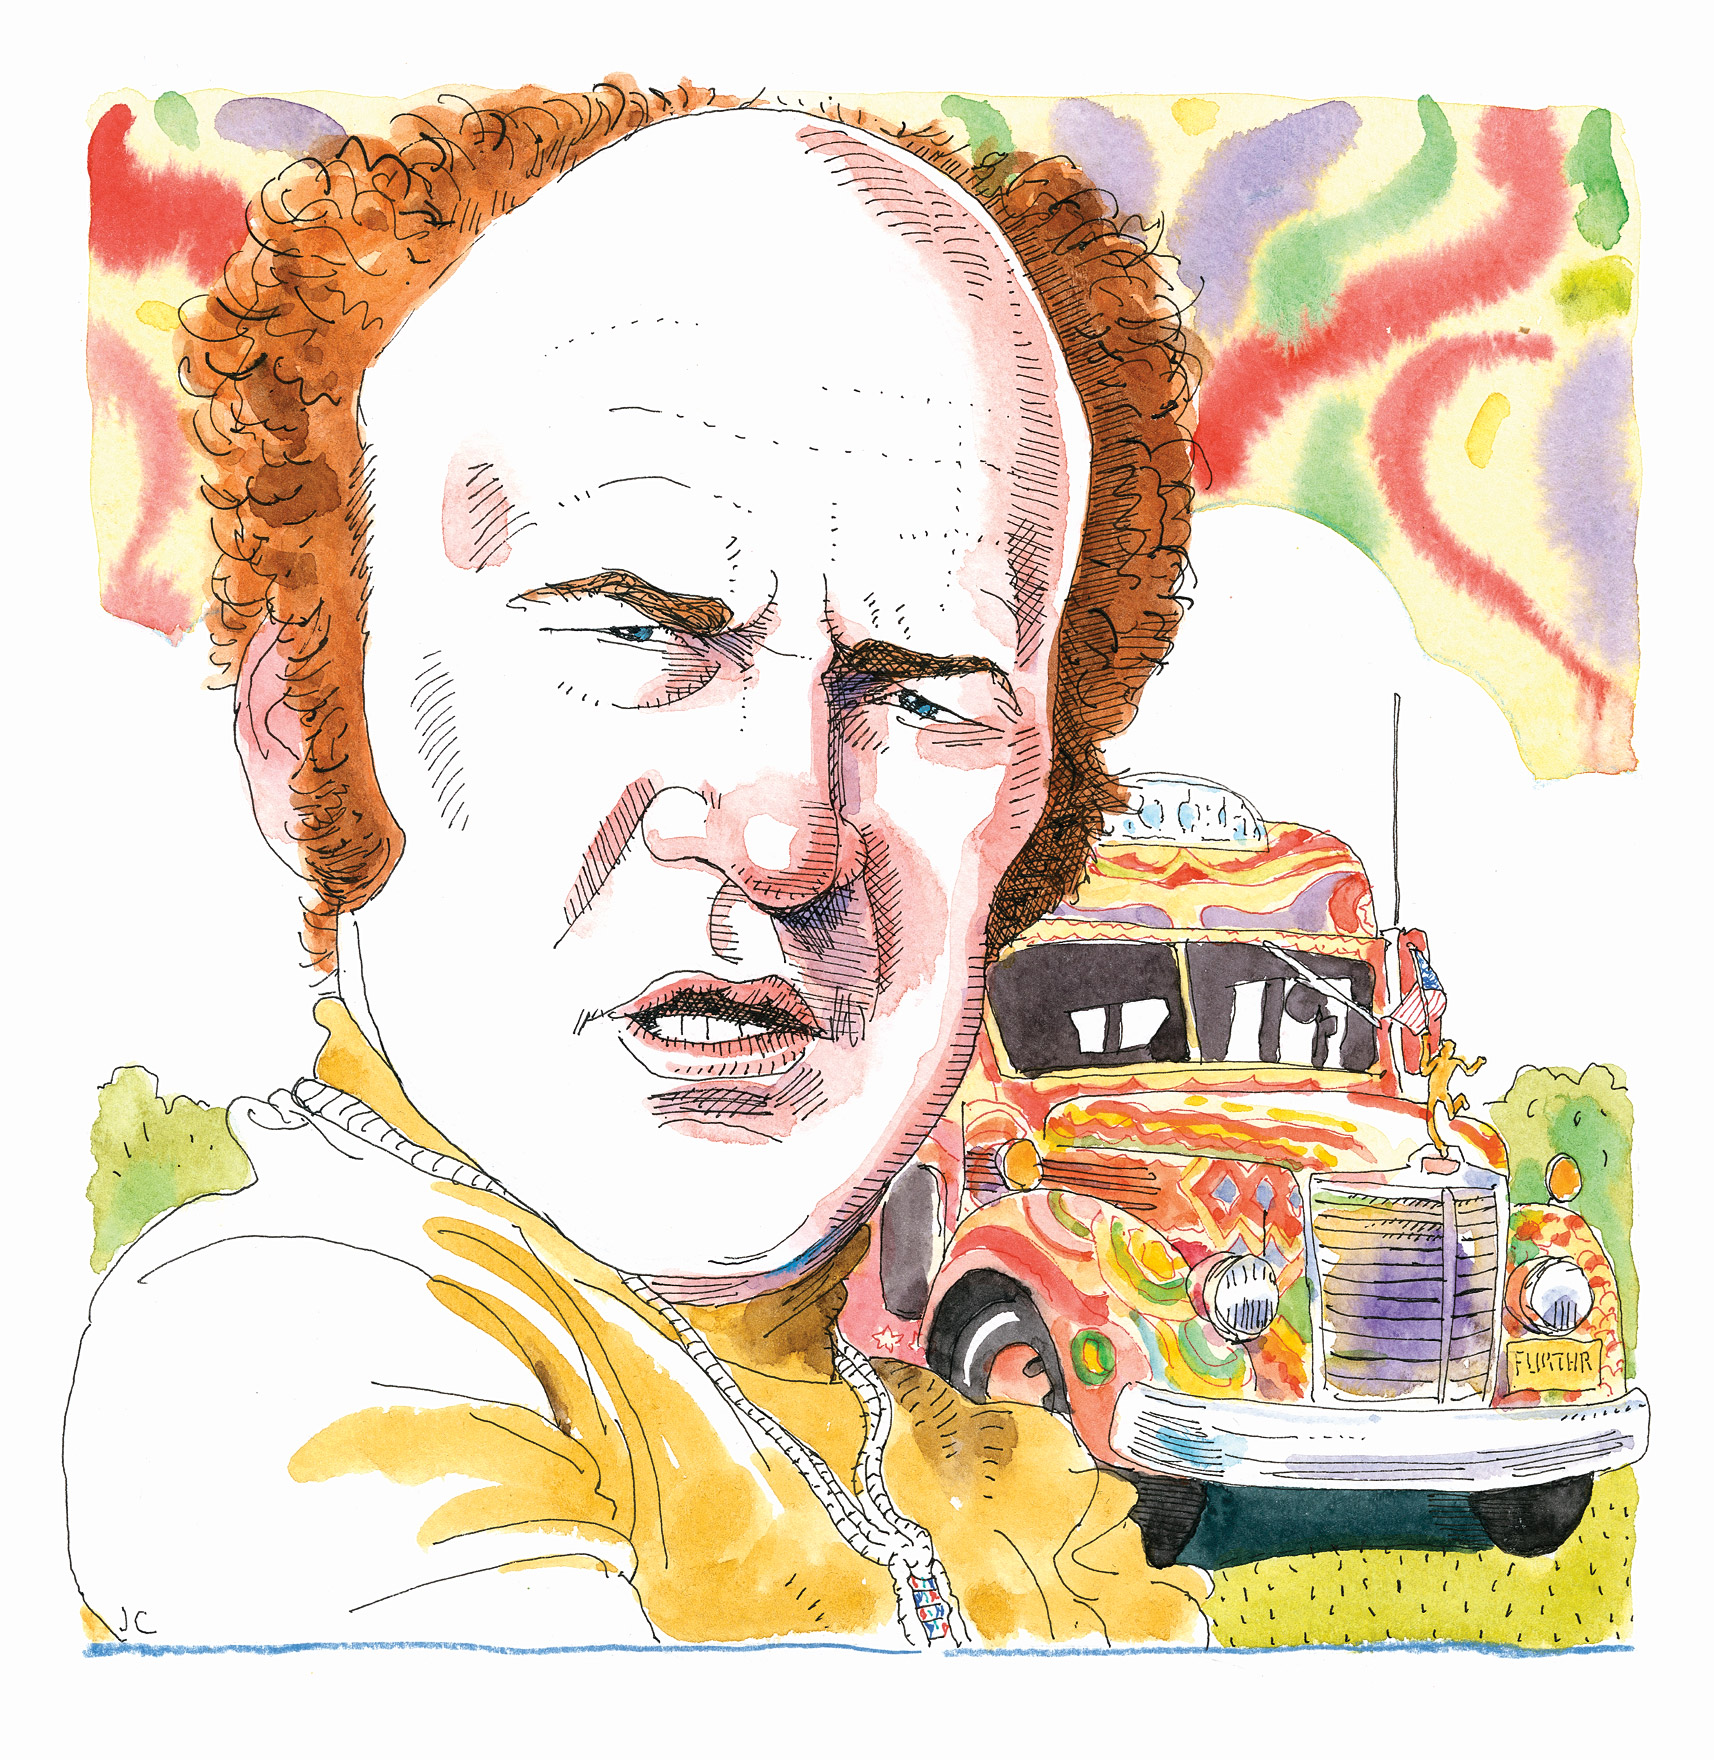 Illustration of Ken Kesey with colorful bus in the background.